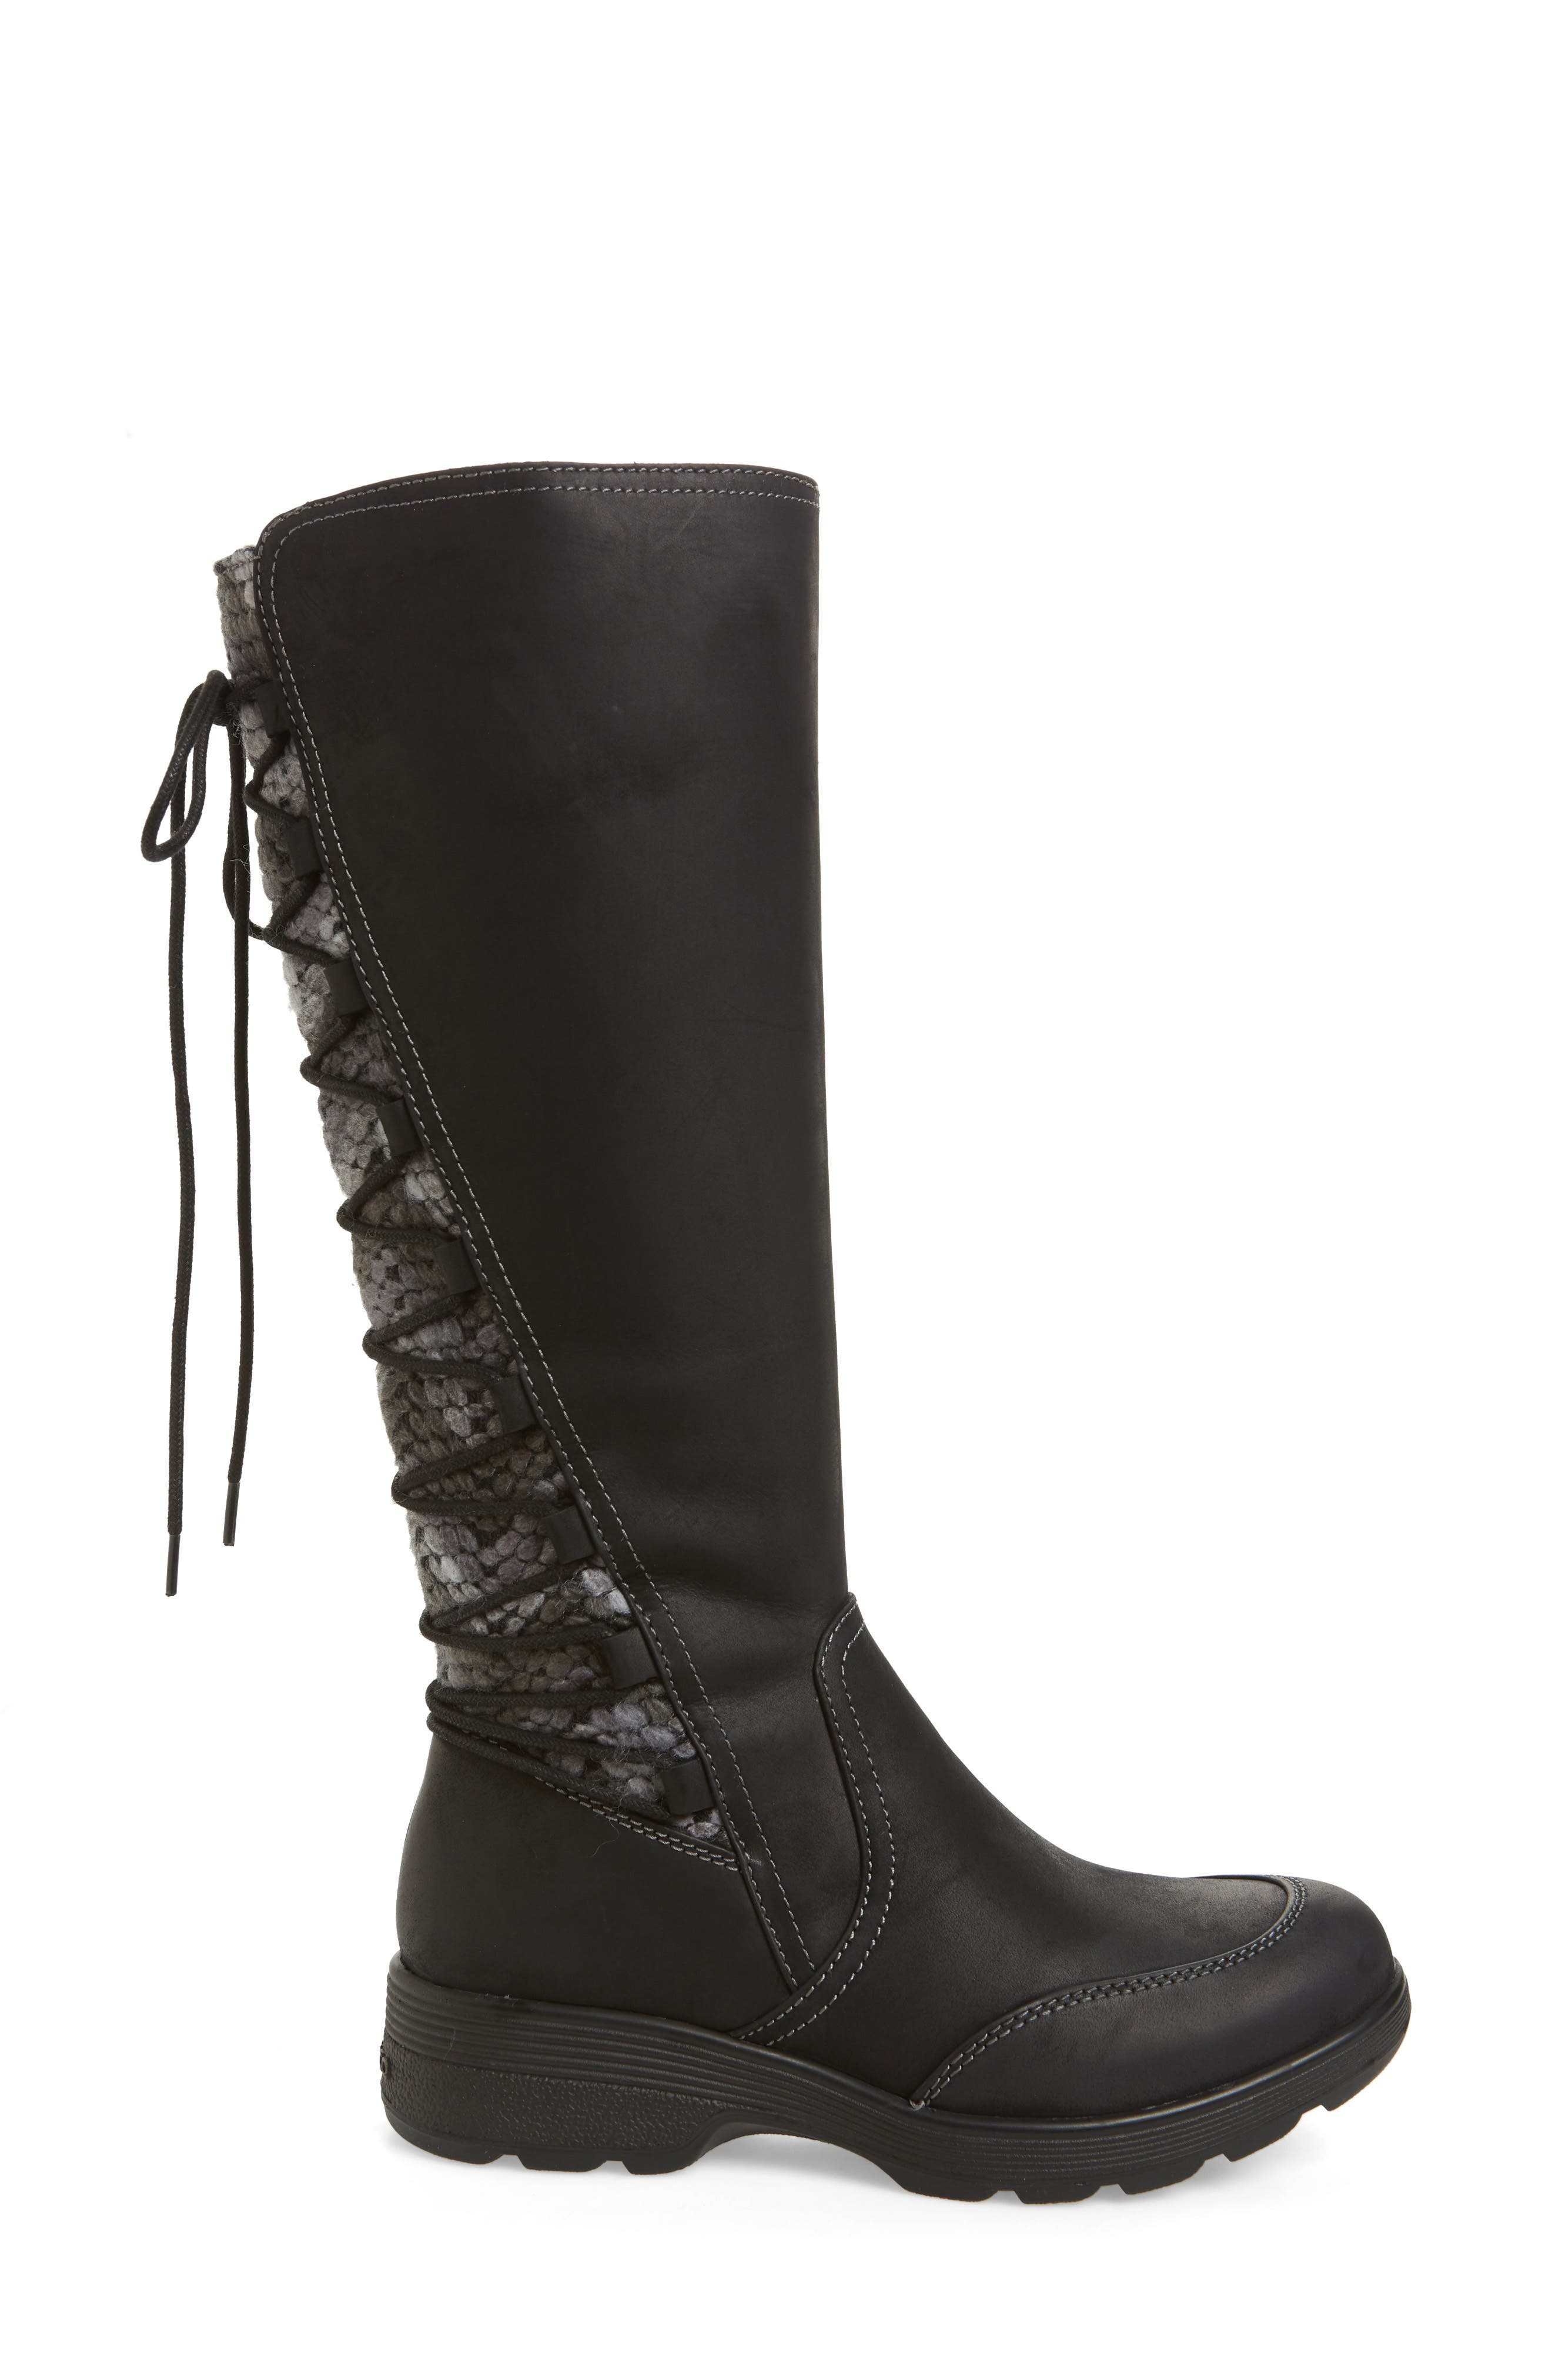 Epping Waterproof Knee High Boot,                             Alternate thumbnail 3, color,                             BLACK LEATHER